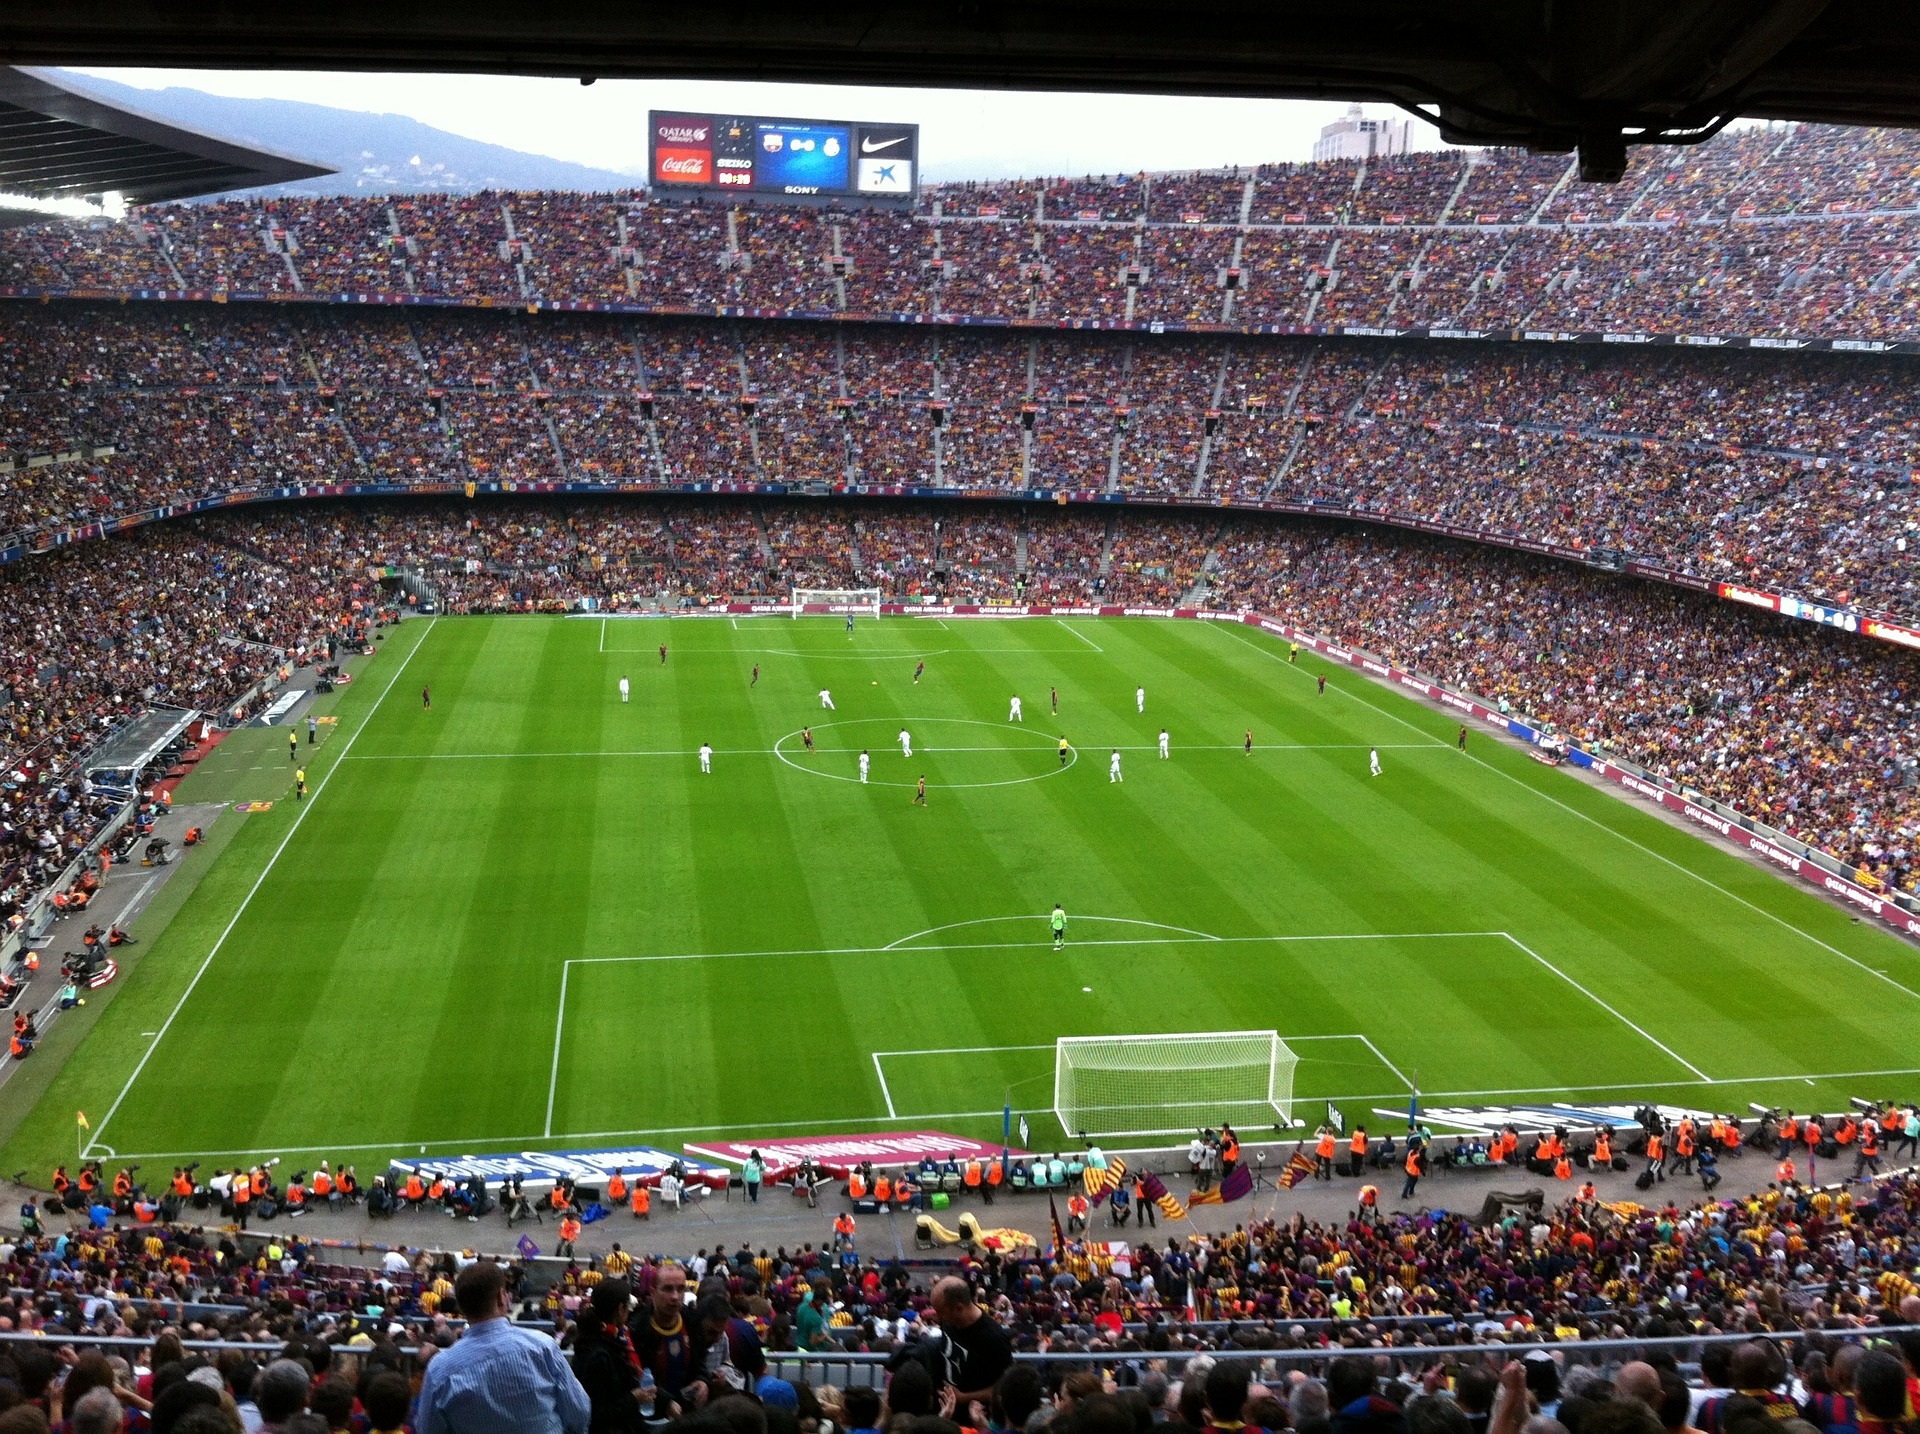 Camp Nou, where the club FC Barcelona (or Barça) plays, can seat almost 100,000 people. And when it's packed, that's over two hours of intense time with your friends, family, and fellow supporters.